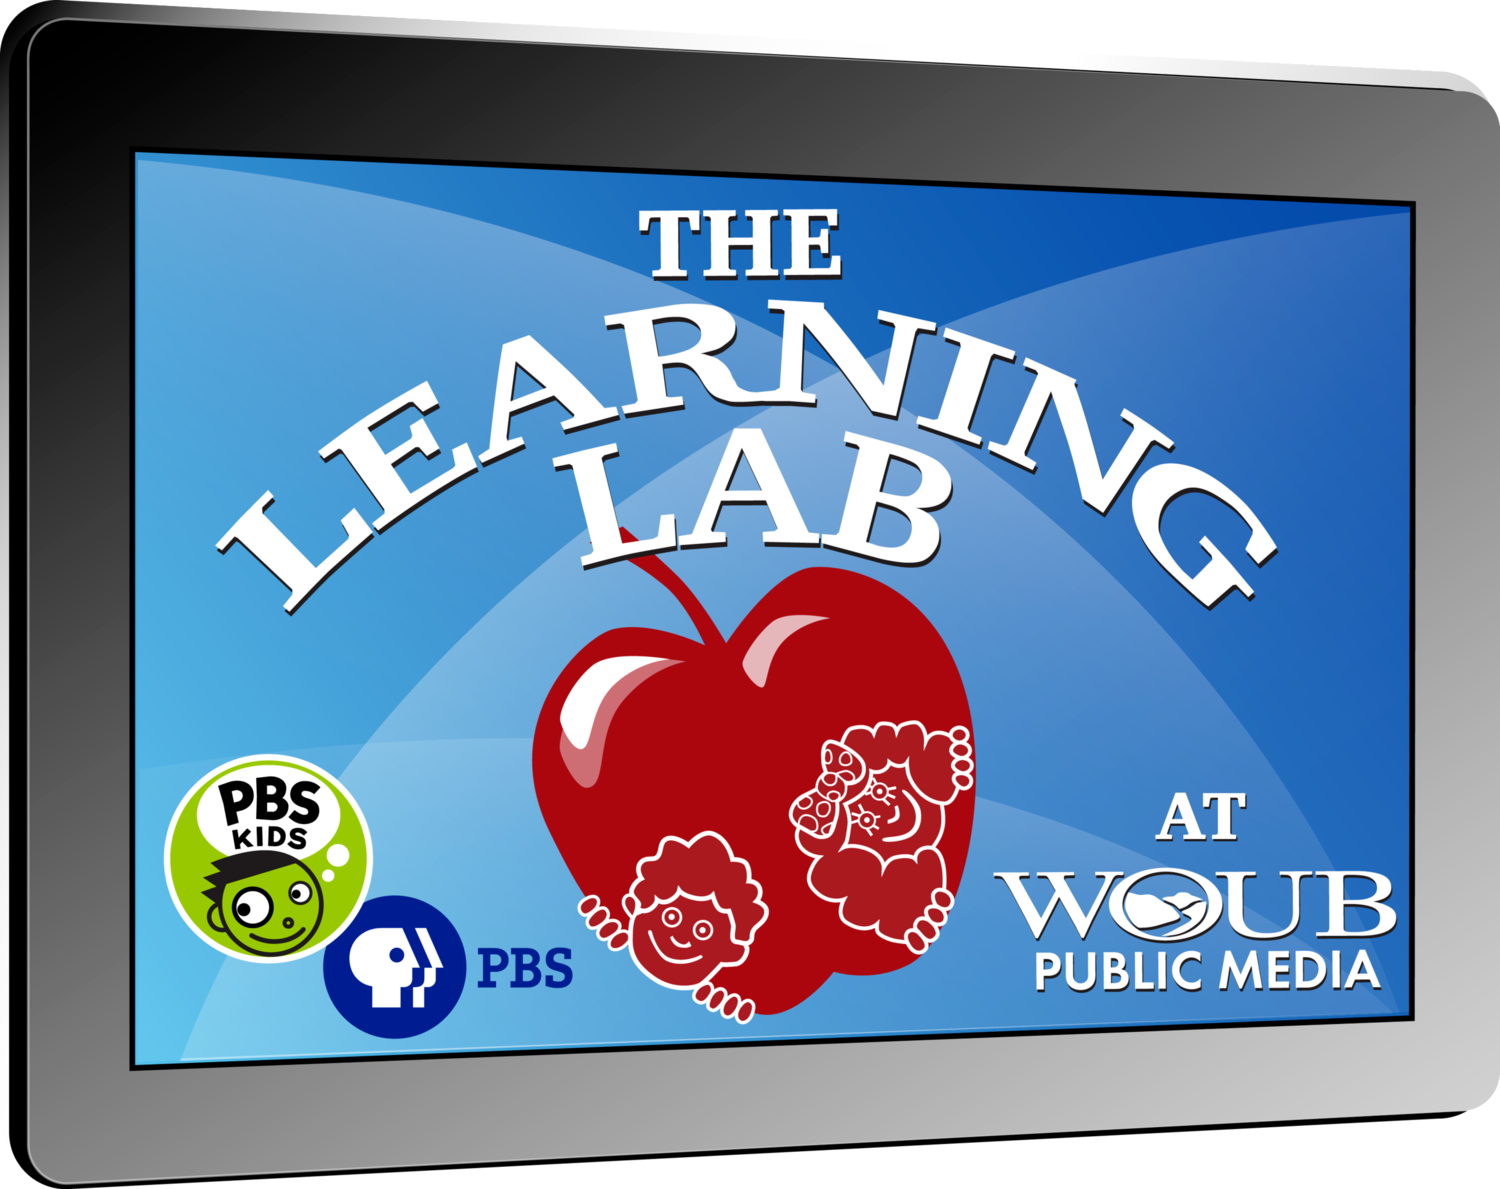 WOUB Learning Lab